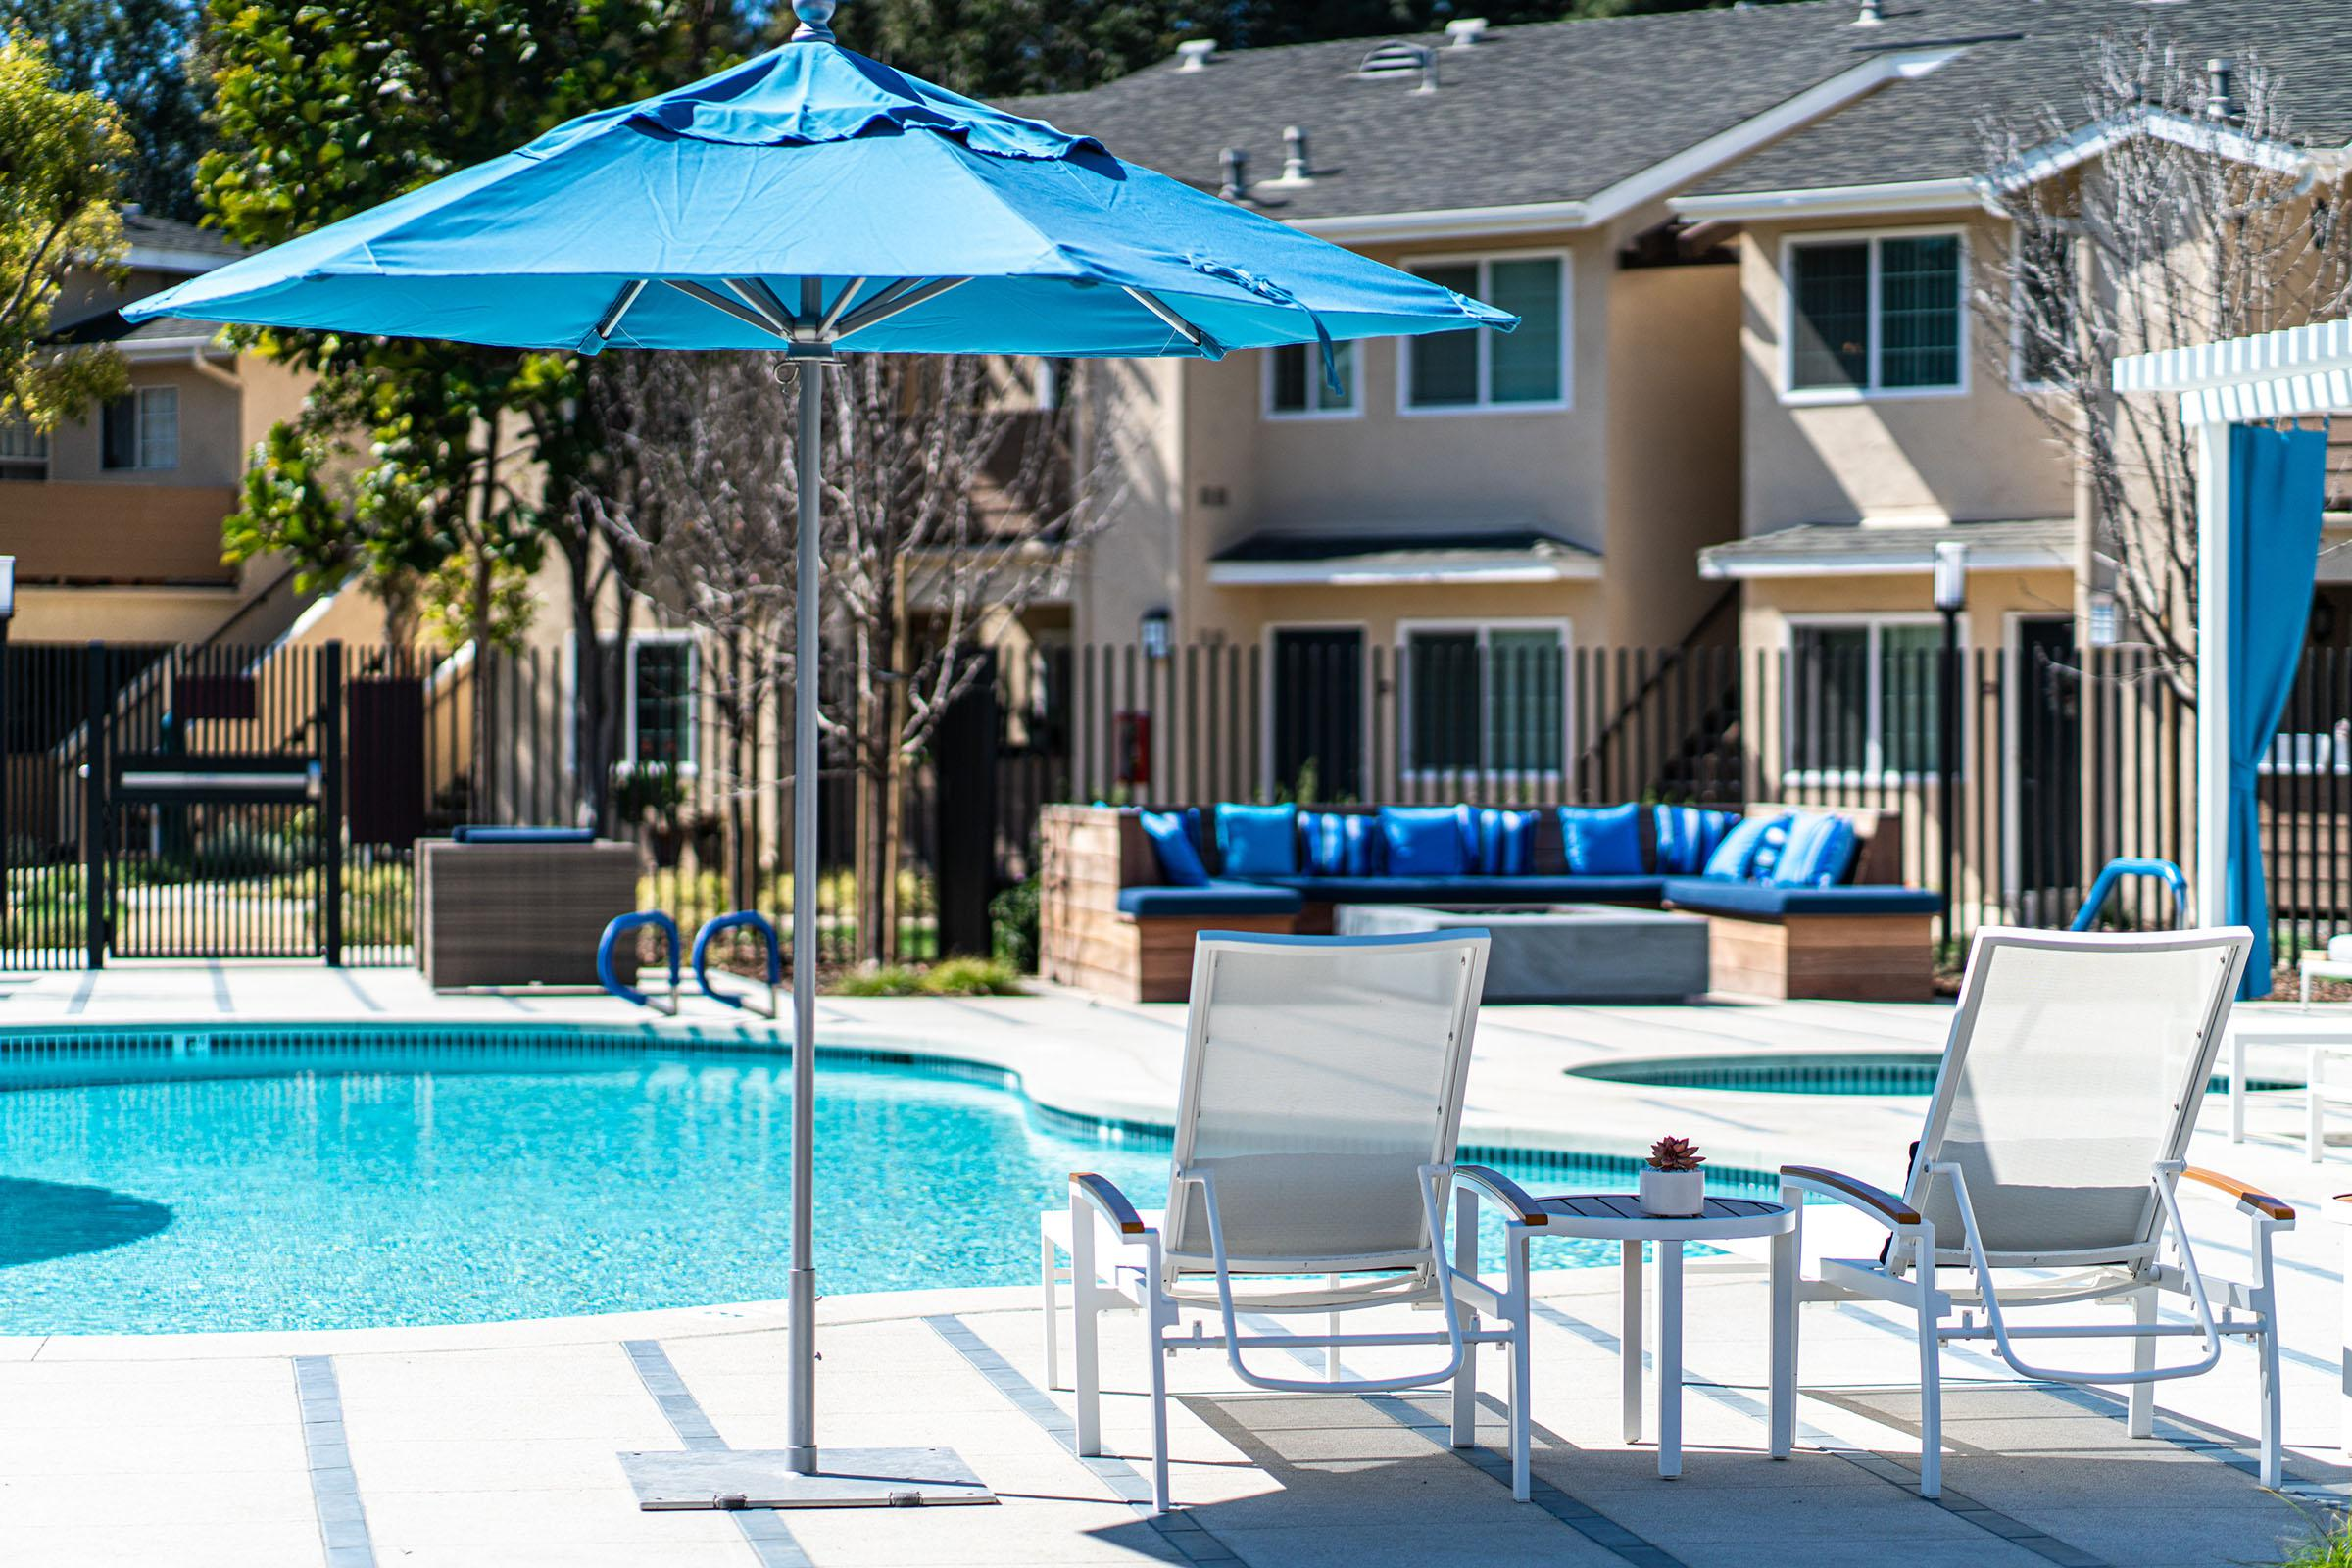 a group of lawn chairs sitting on a pool table with a blue umbrella